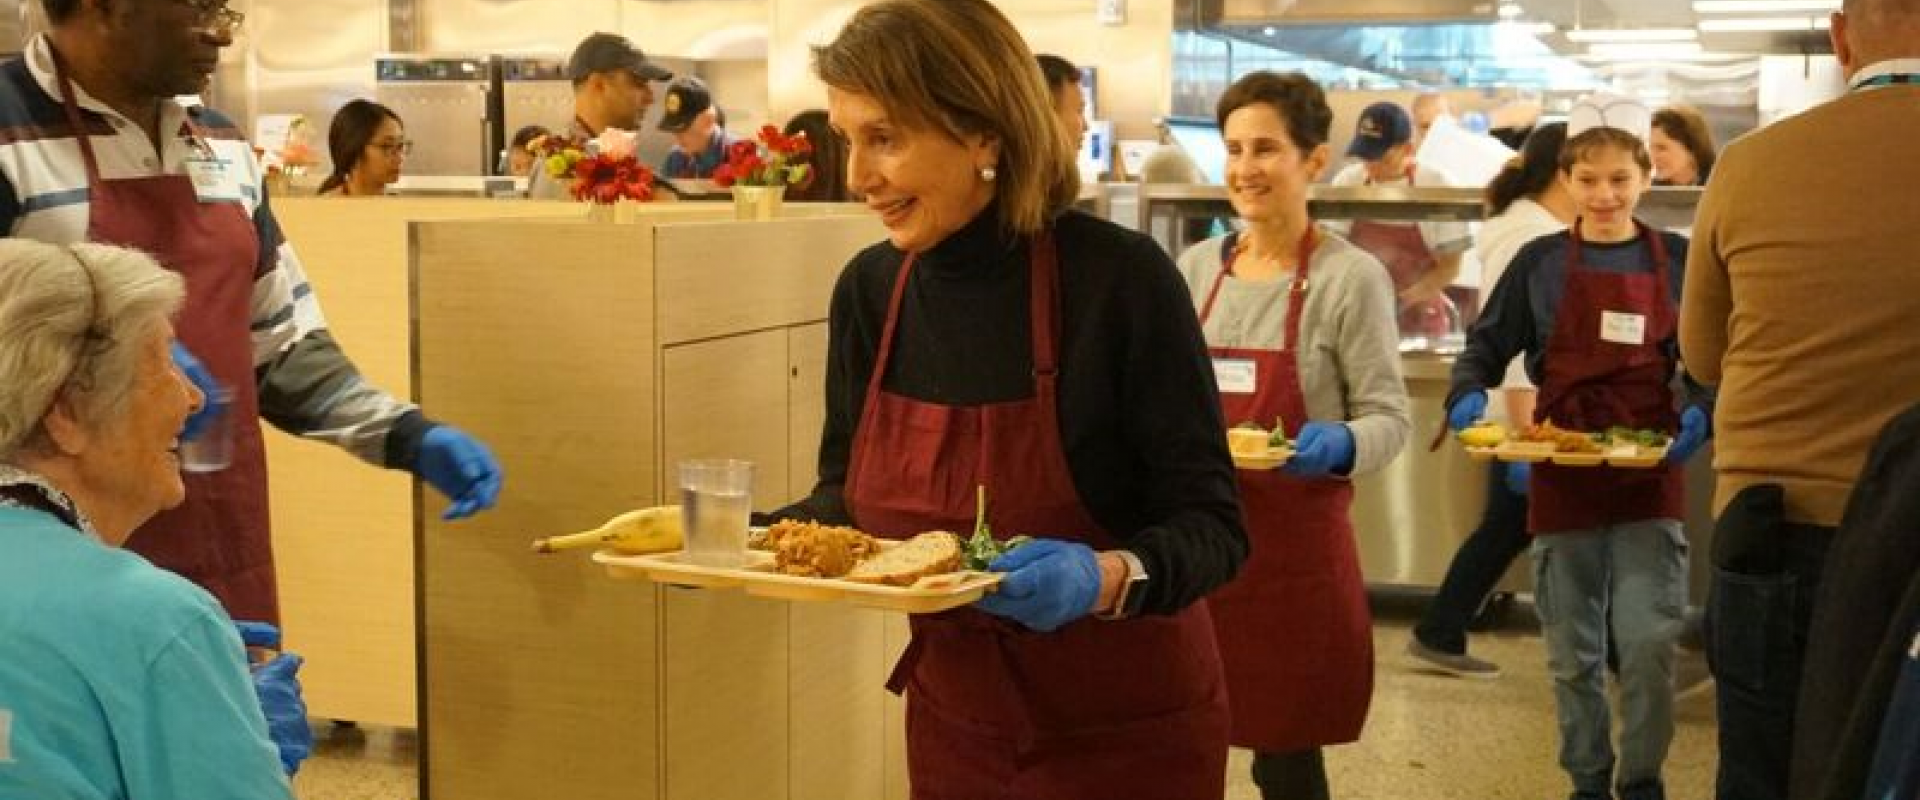 Congresswoman Pelosi and her family volunteered at St. Anthony's Dining Room in the Tenderloin on Wednesday serving meals to our community for the Thanksgiving holiday season.